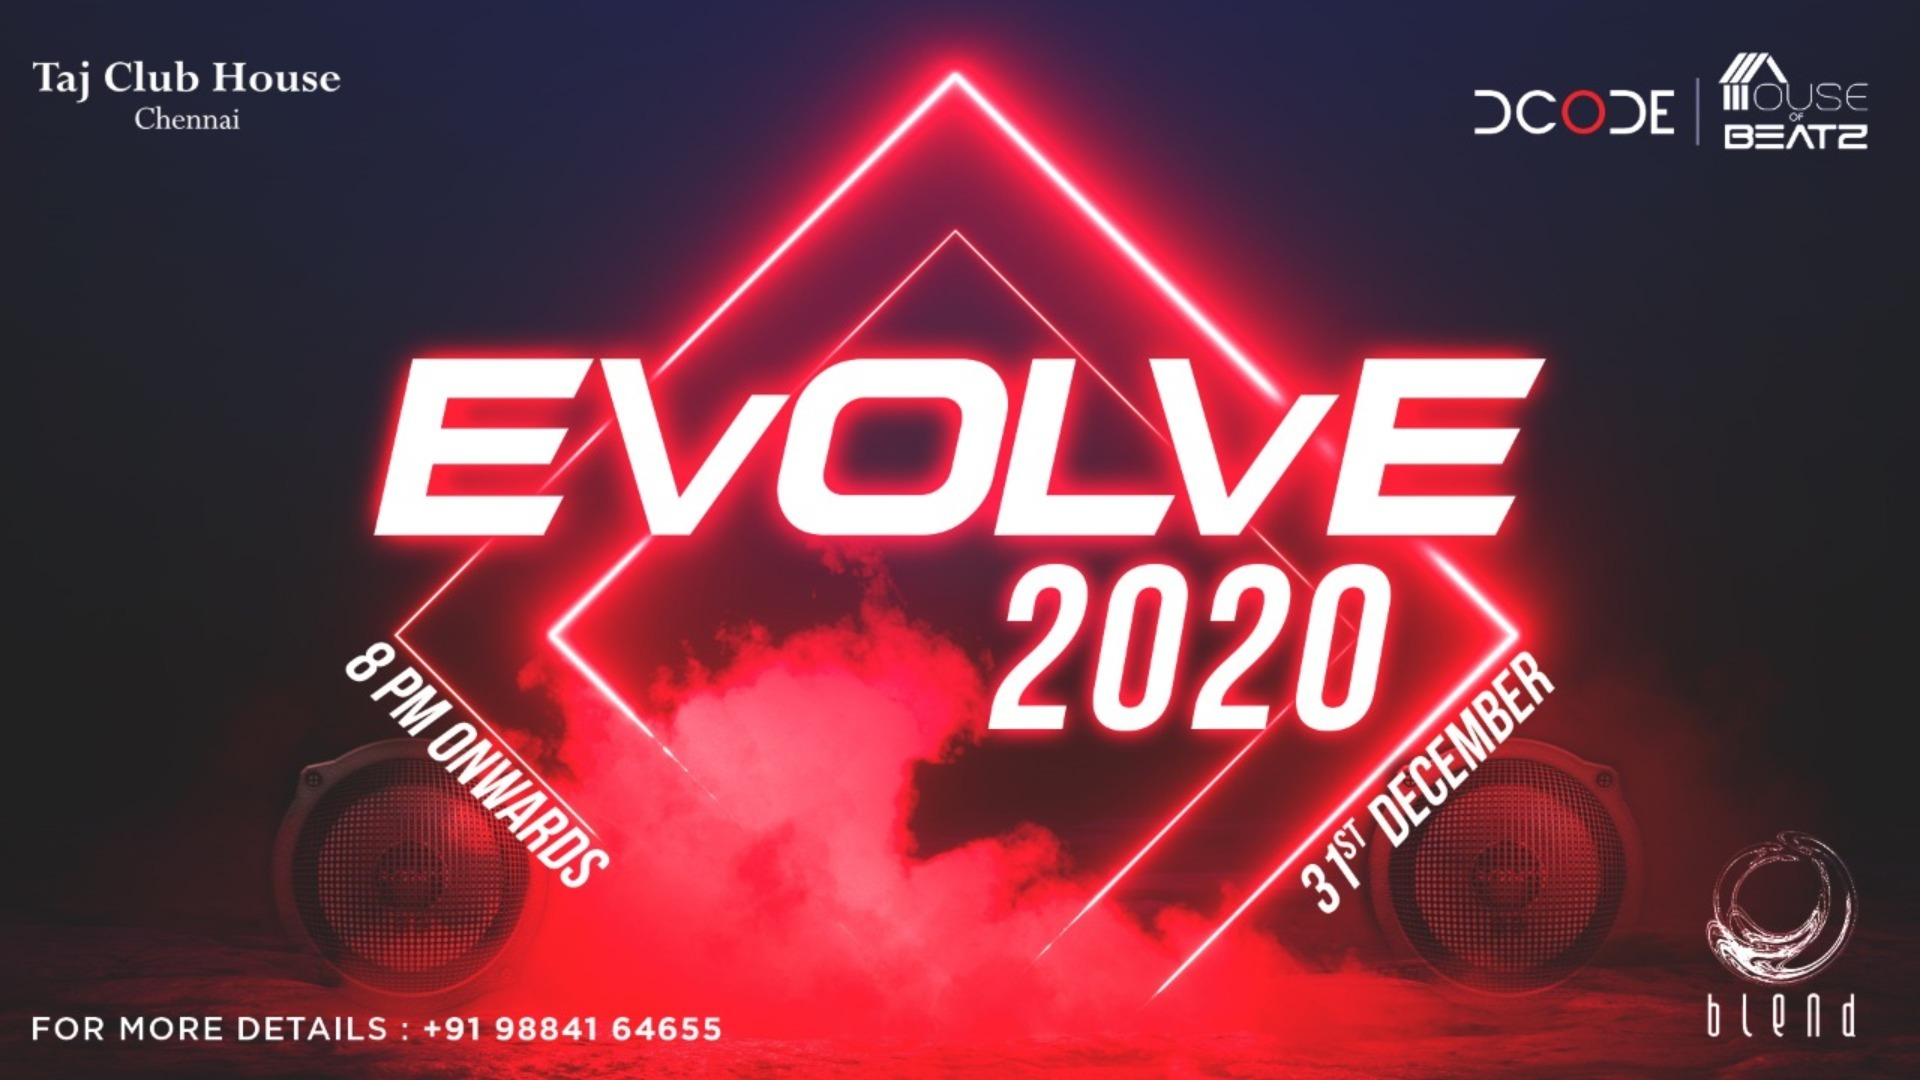 EVOLVE 2020 – NYE Party @ Blend, Taj Clubhouse Chennai